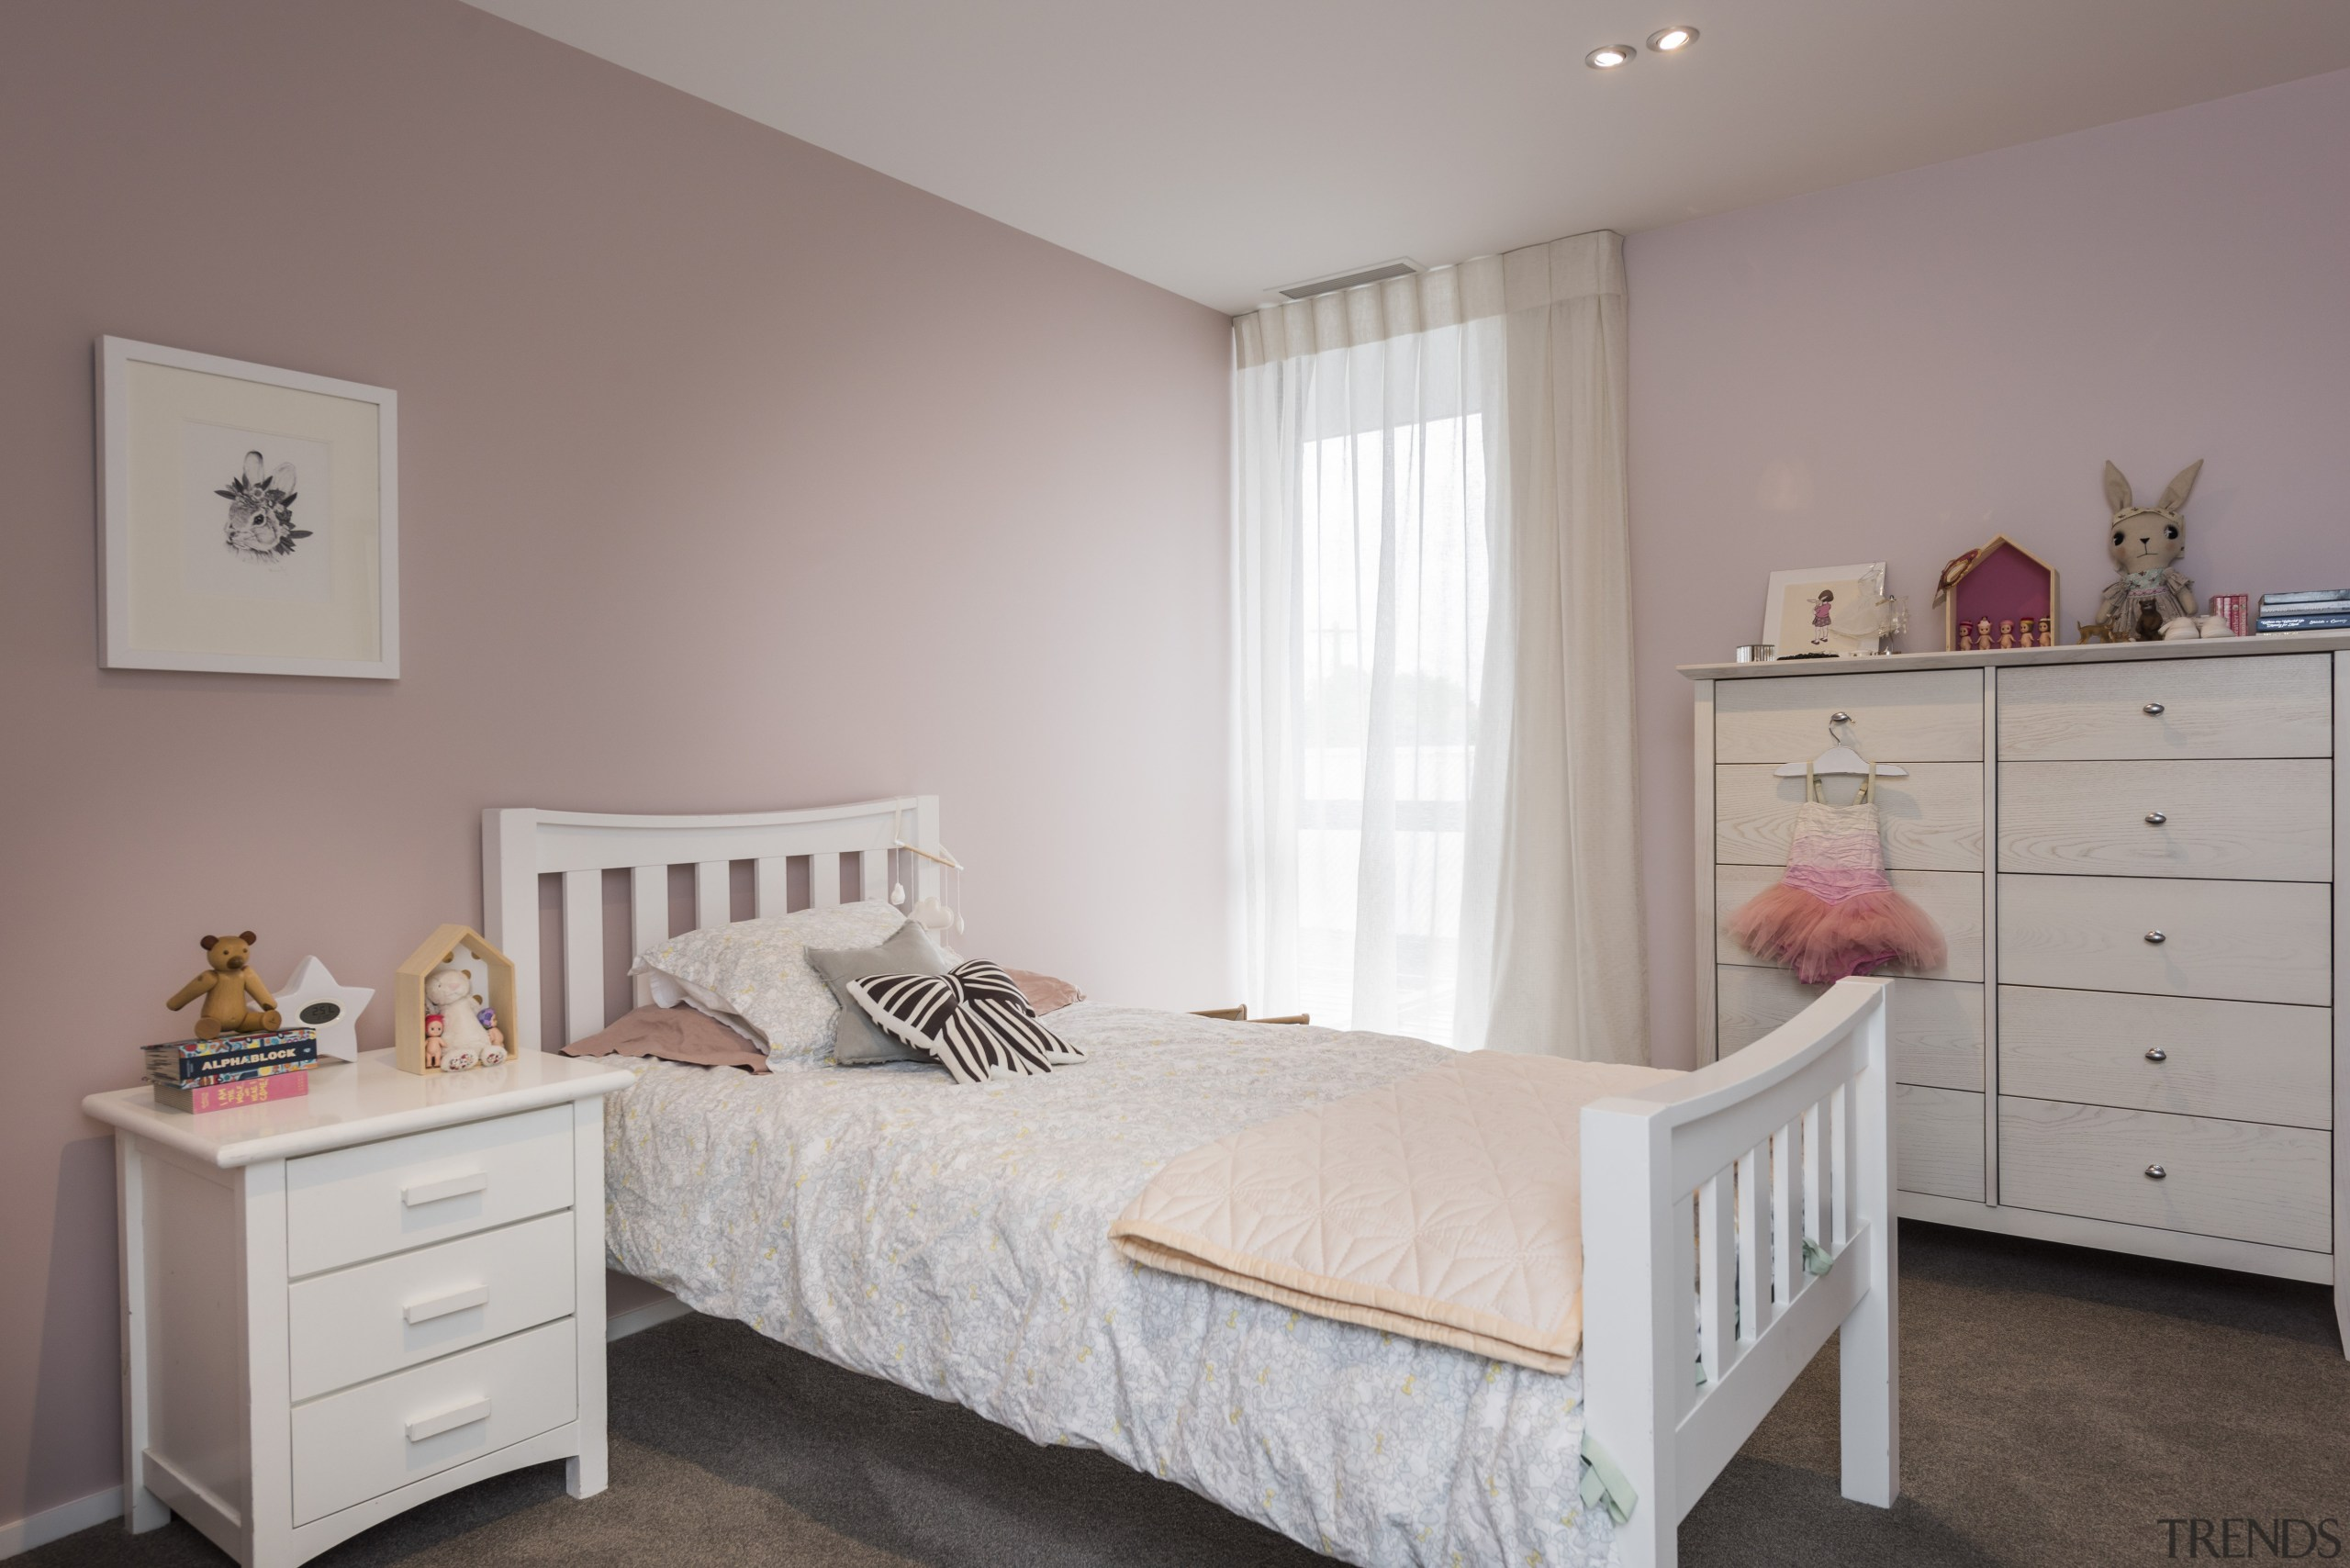 Eterno Design effortlessly brought an individual aesthetic to bed, furniture, home, interior designroom, wall, resene paint, Blanched pink, girls room